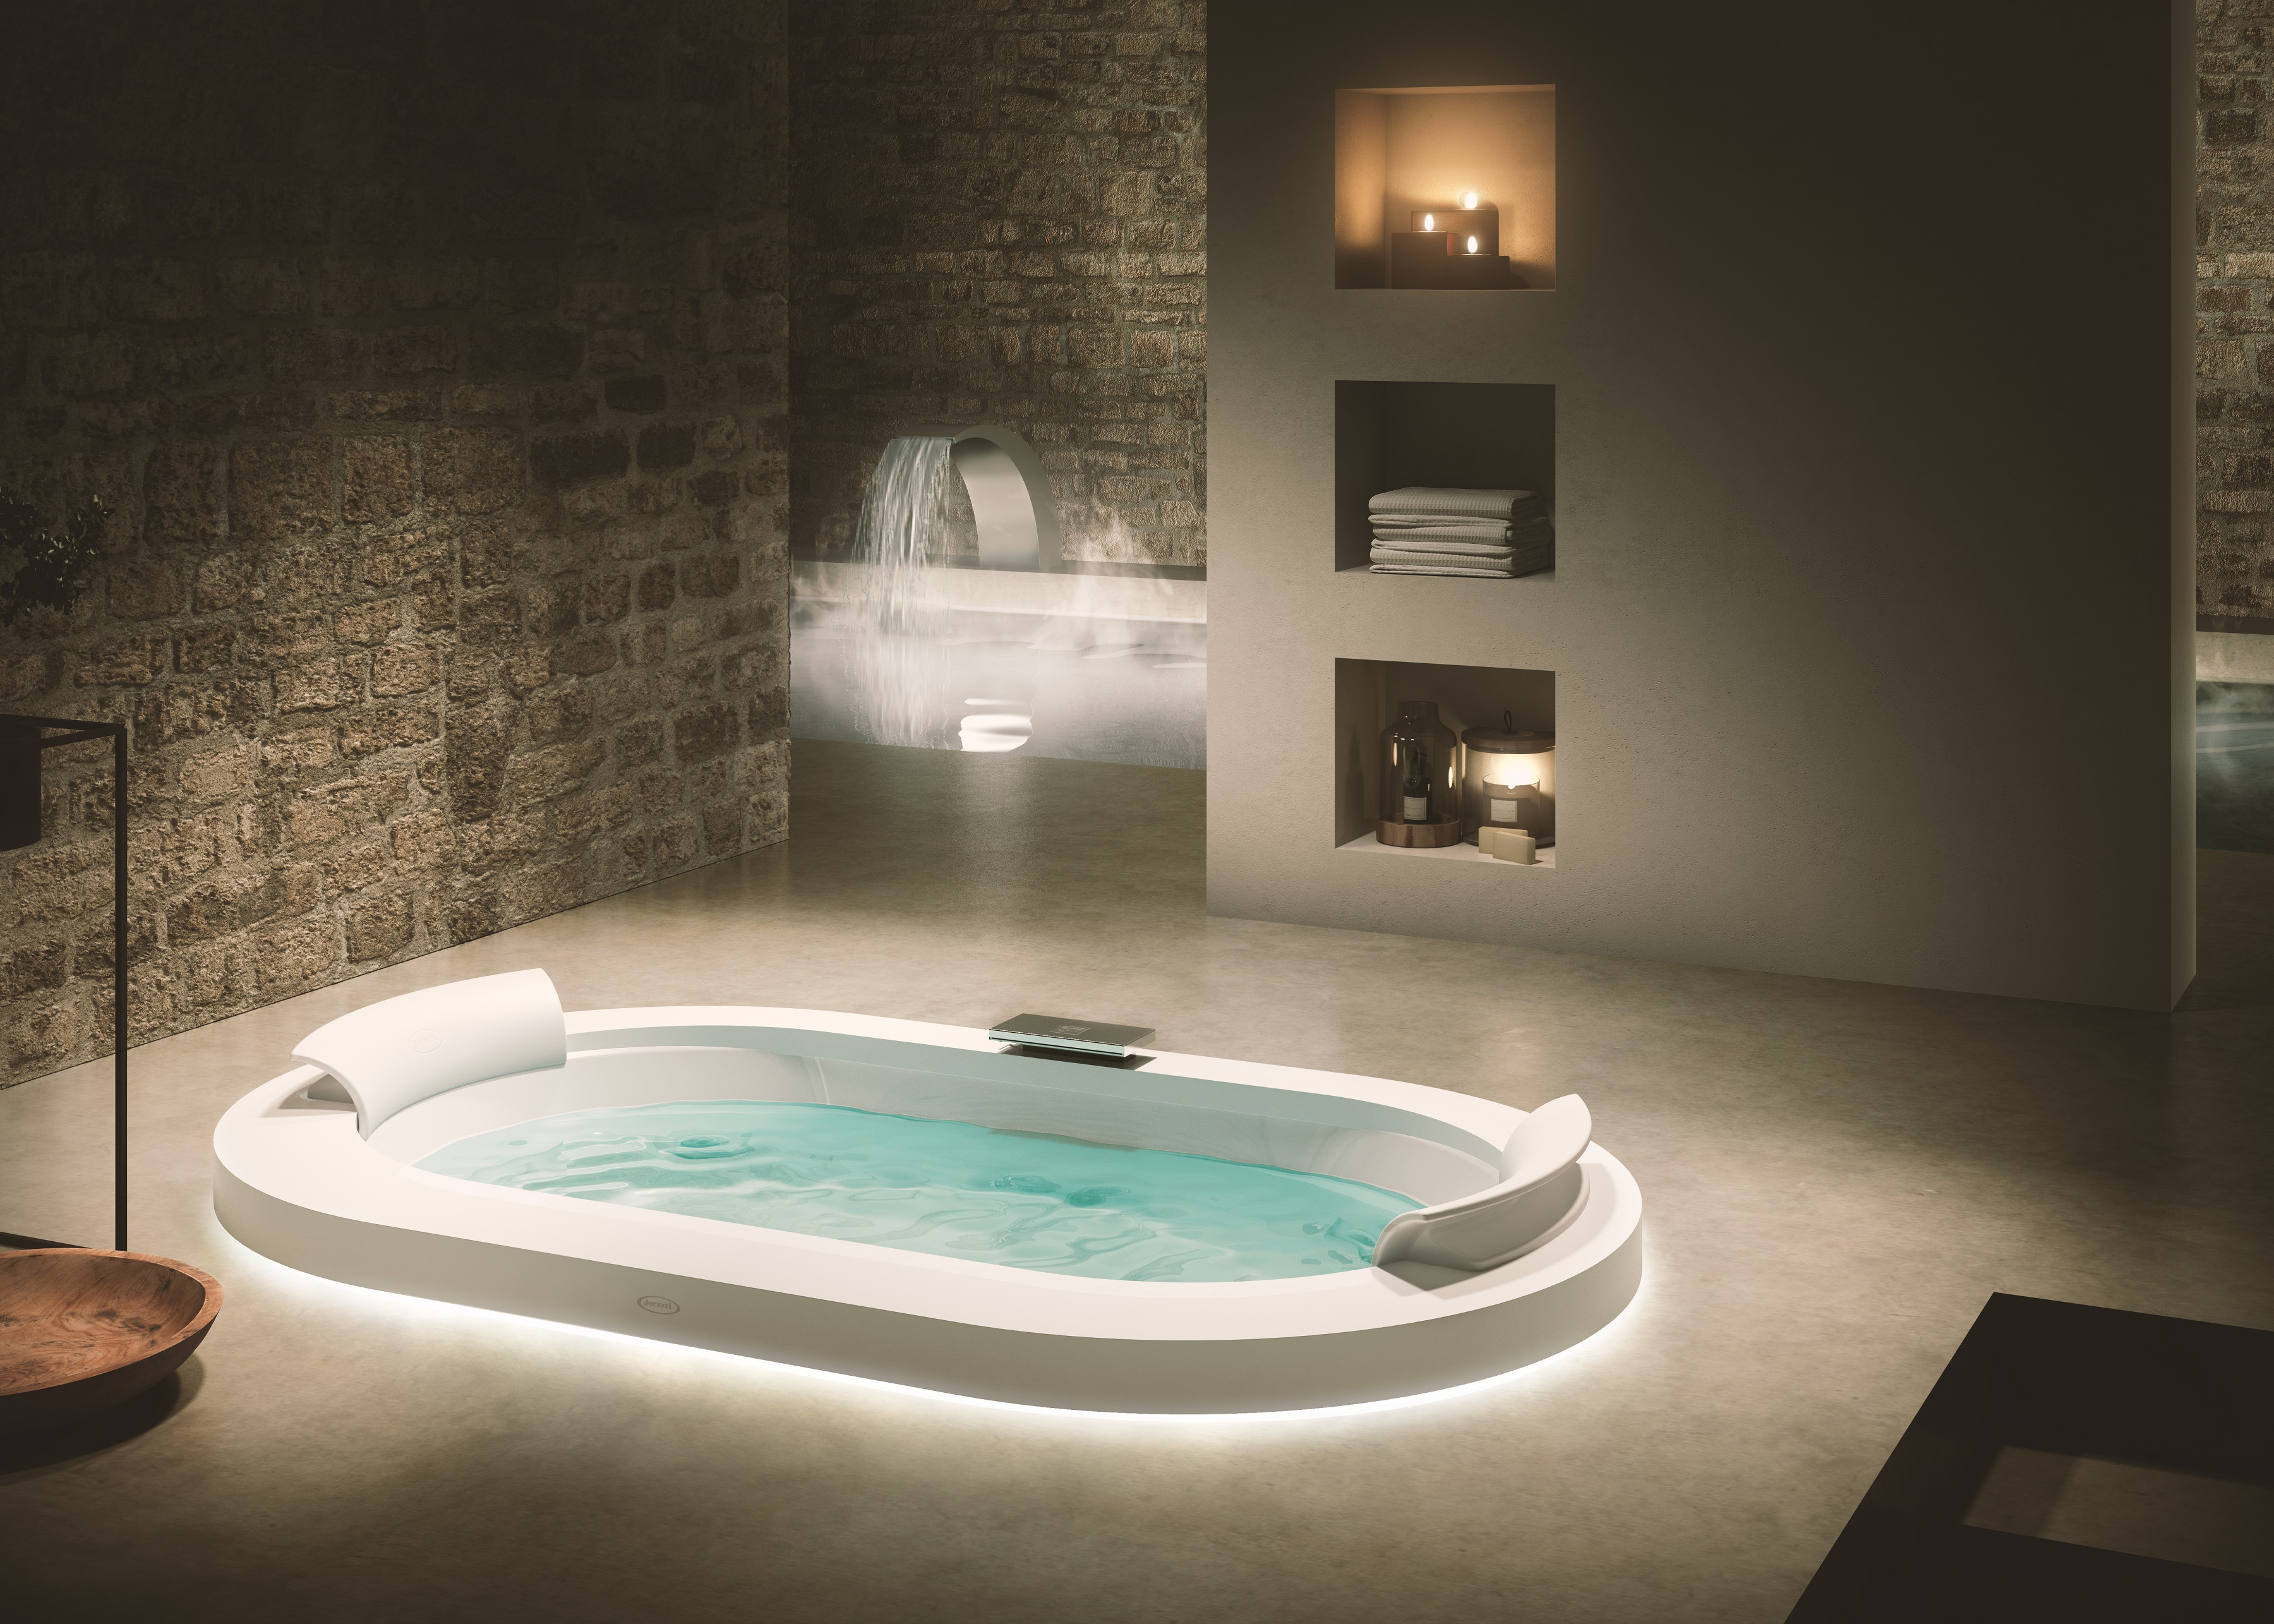 THERMAL H2O - JACUZZI HYDROTHERAPY MEETS THERMAL WATERS | Fuorisalone.it